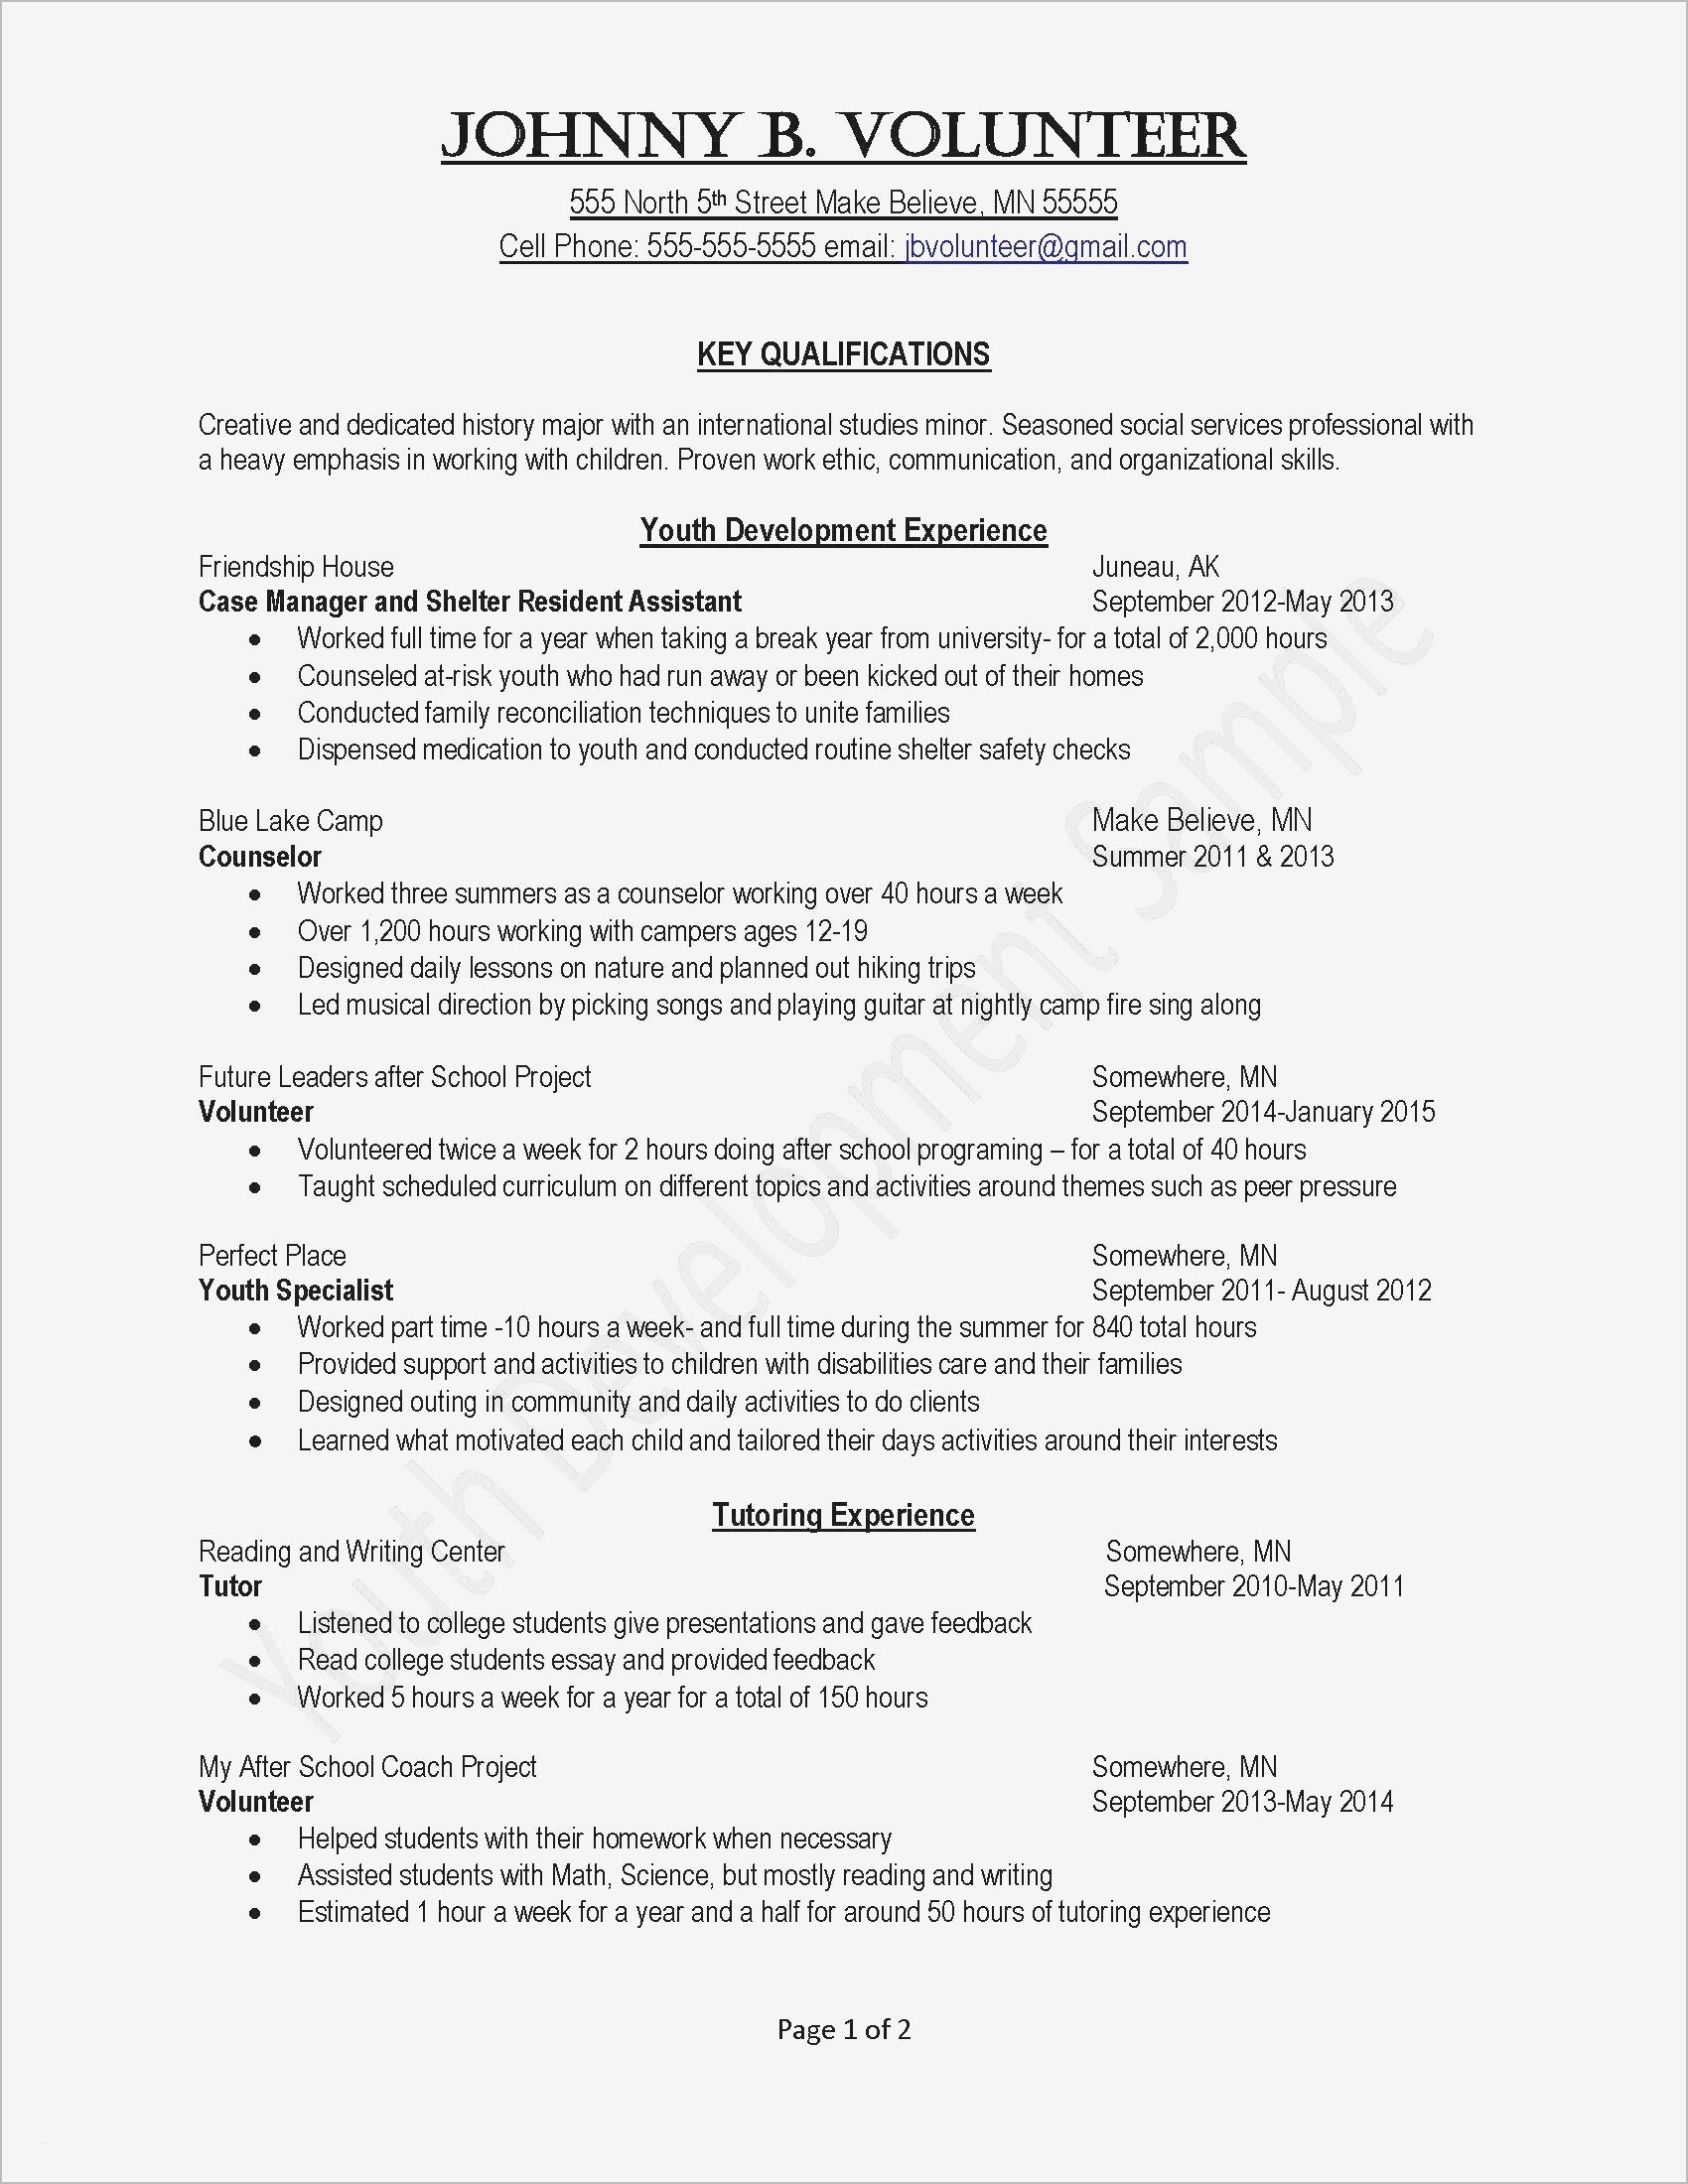 Cfo Cover Letter Template - Resume Examples for Teaching Positions at Resume Sample Ideas